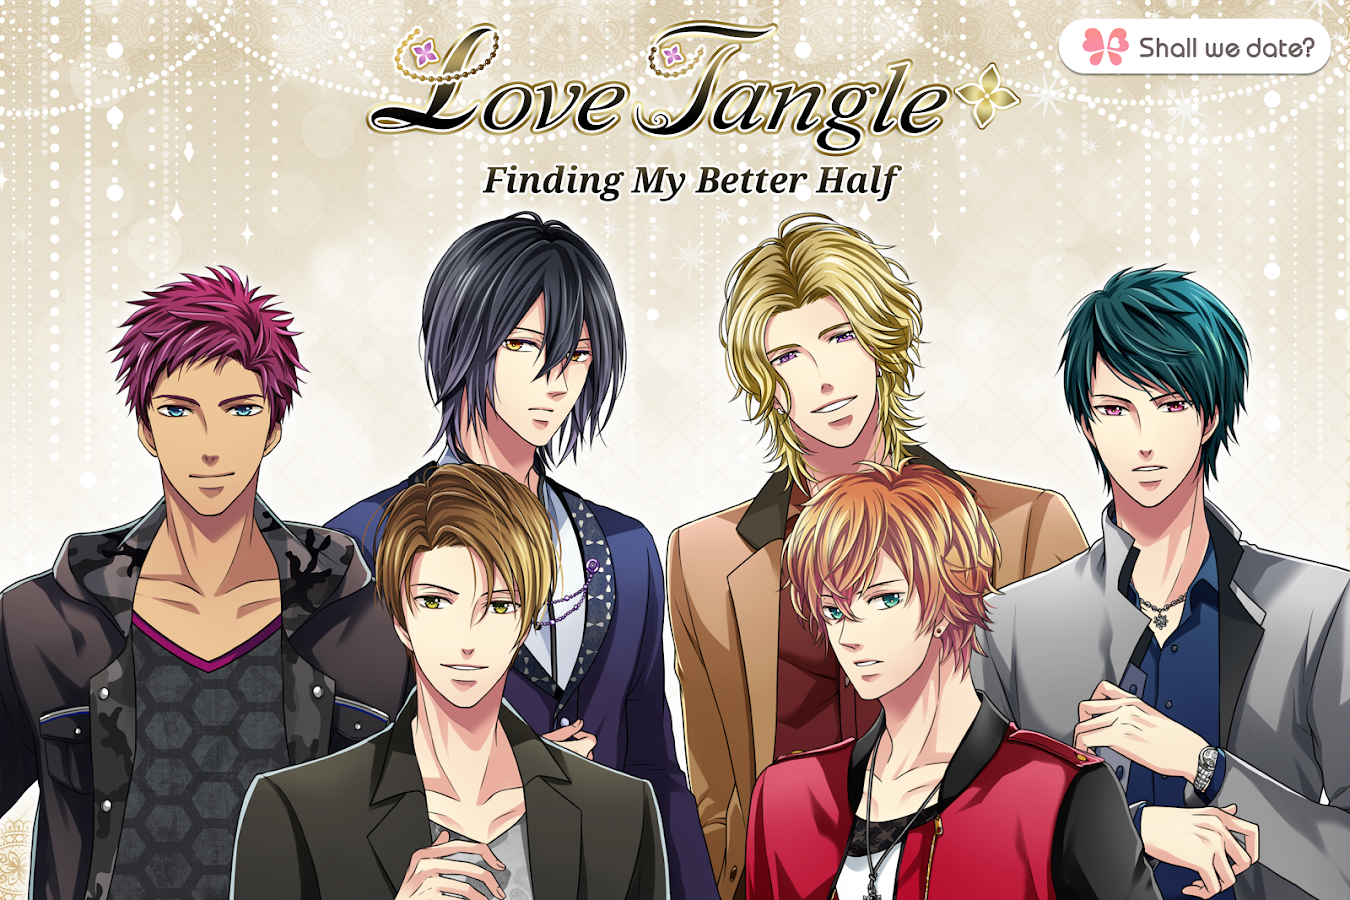 Love Tangle / Shall we date? - Android Apps on Google Play